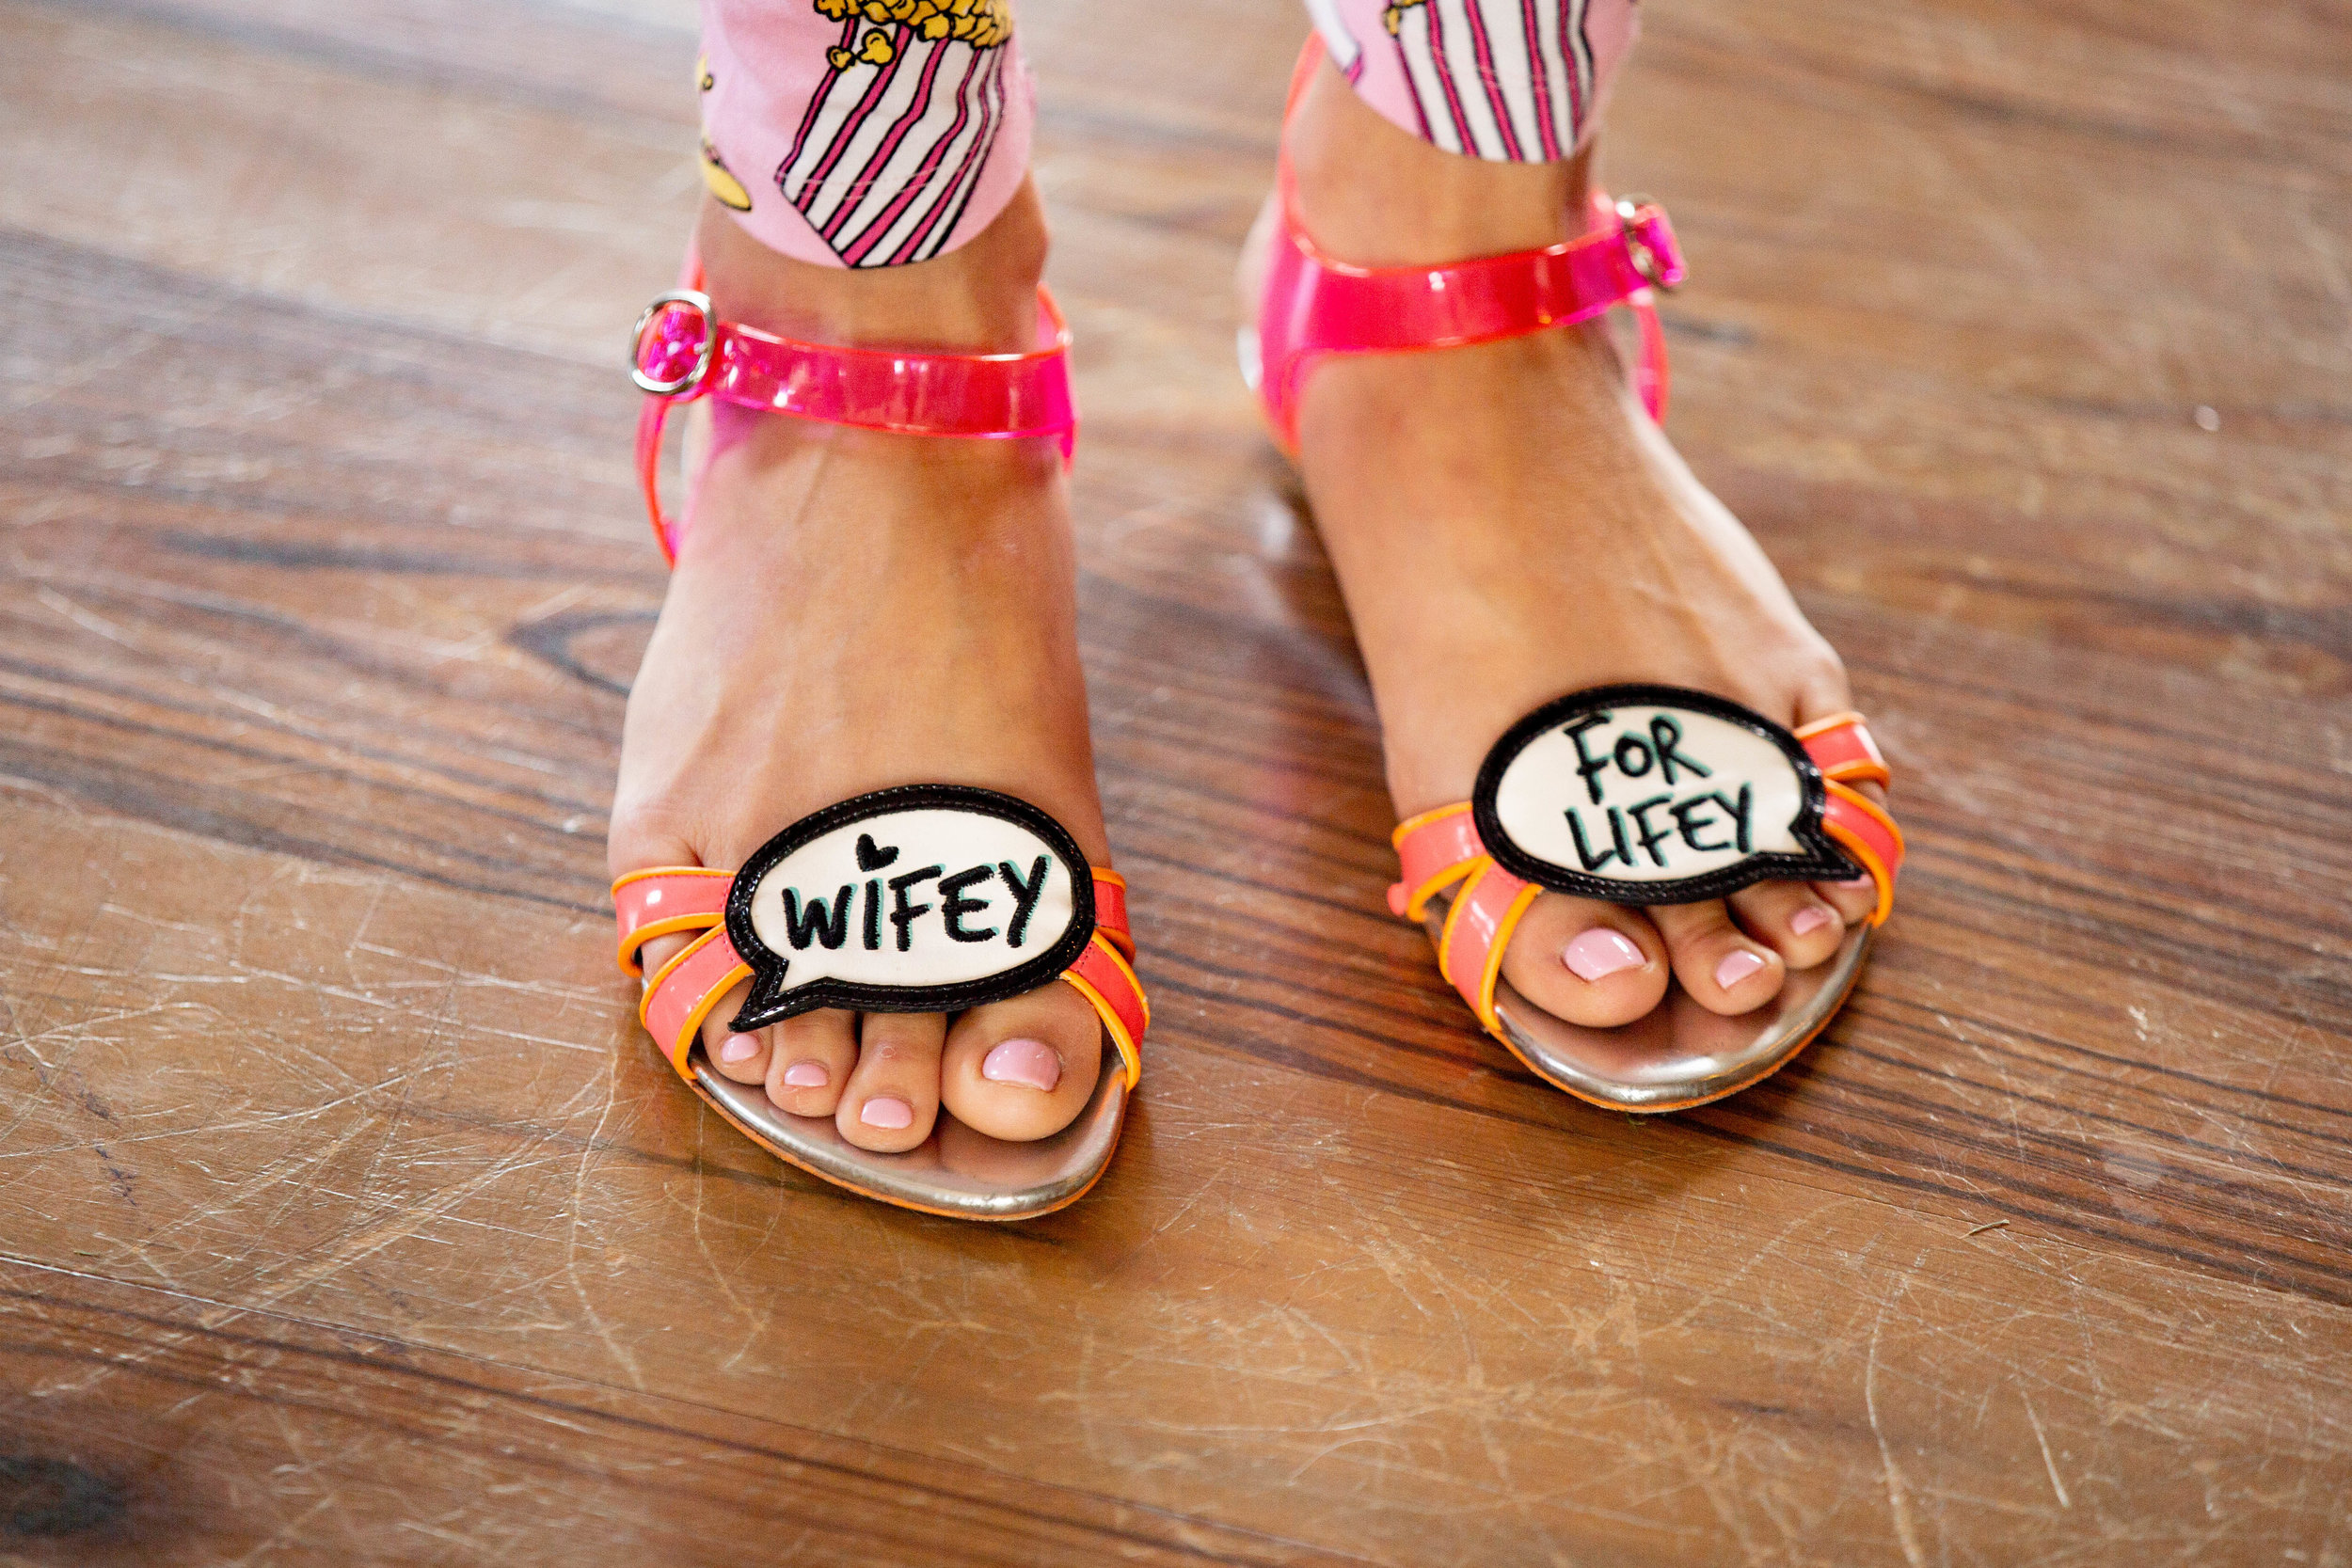 Wifey for Lifey shoes